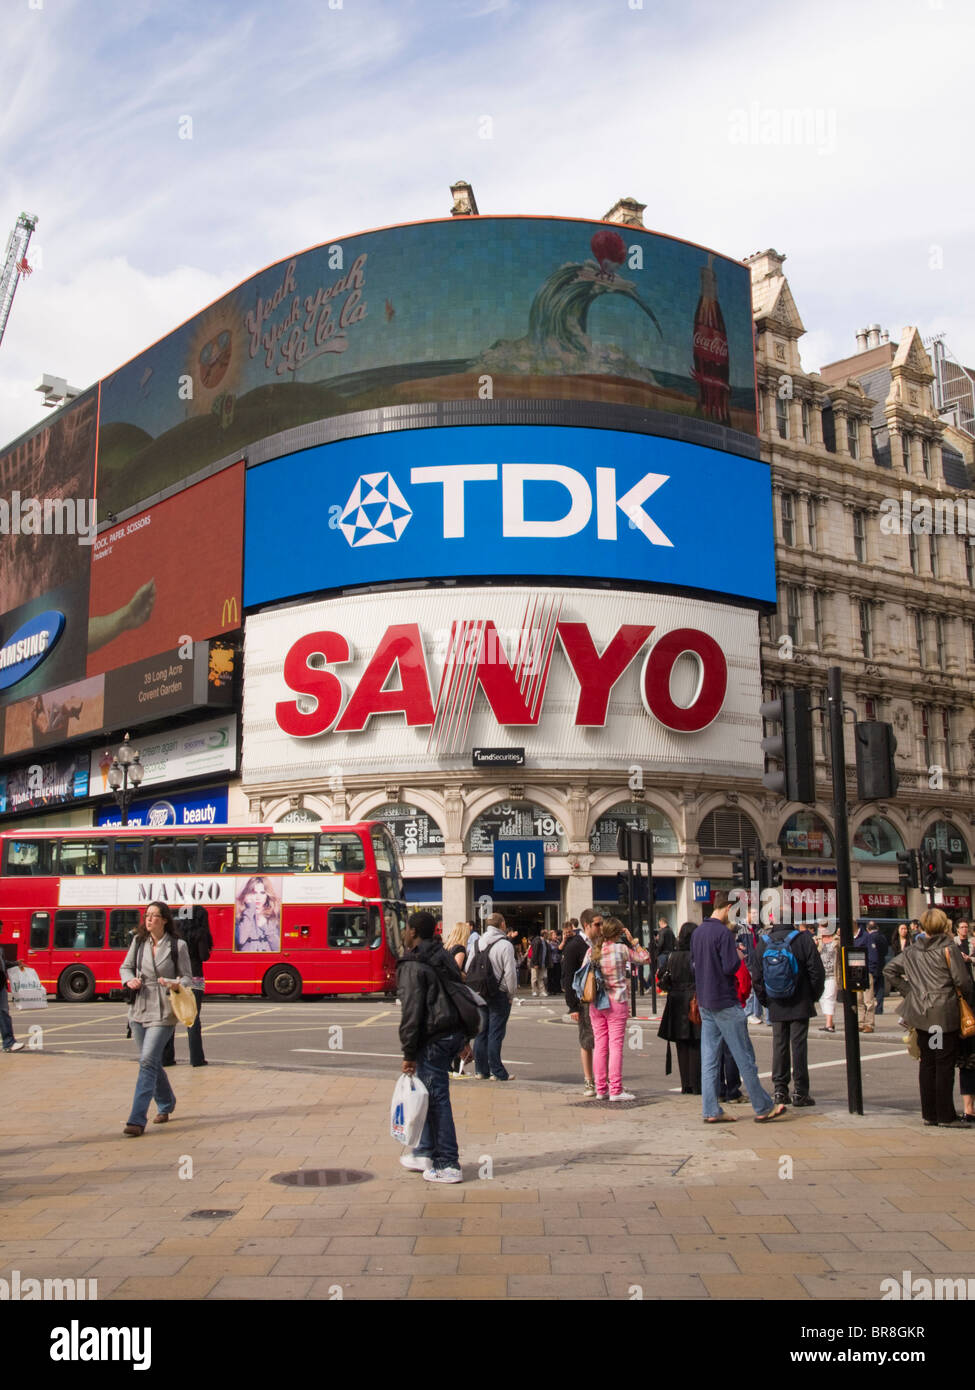 Piccadilly Circus, West End, London, England, UK - Stock Image